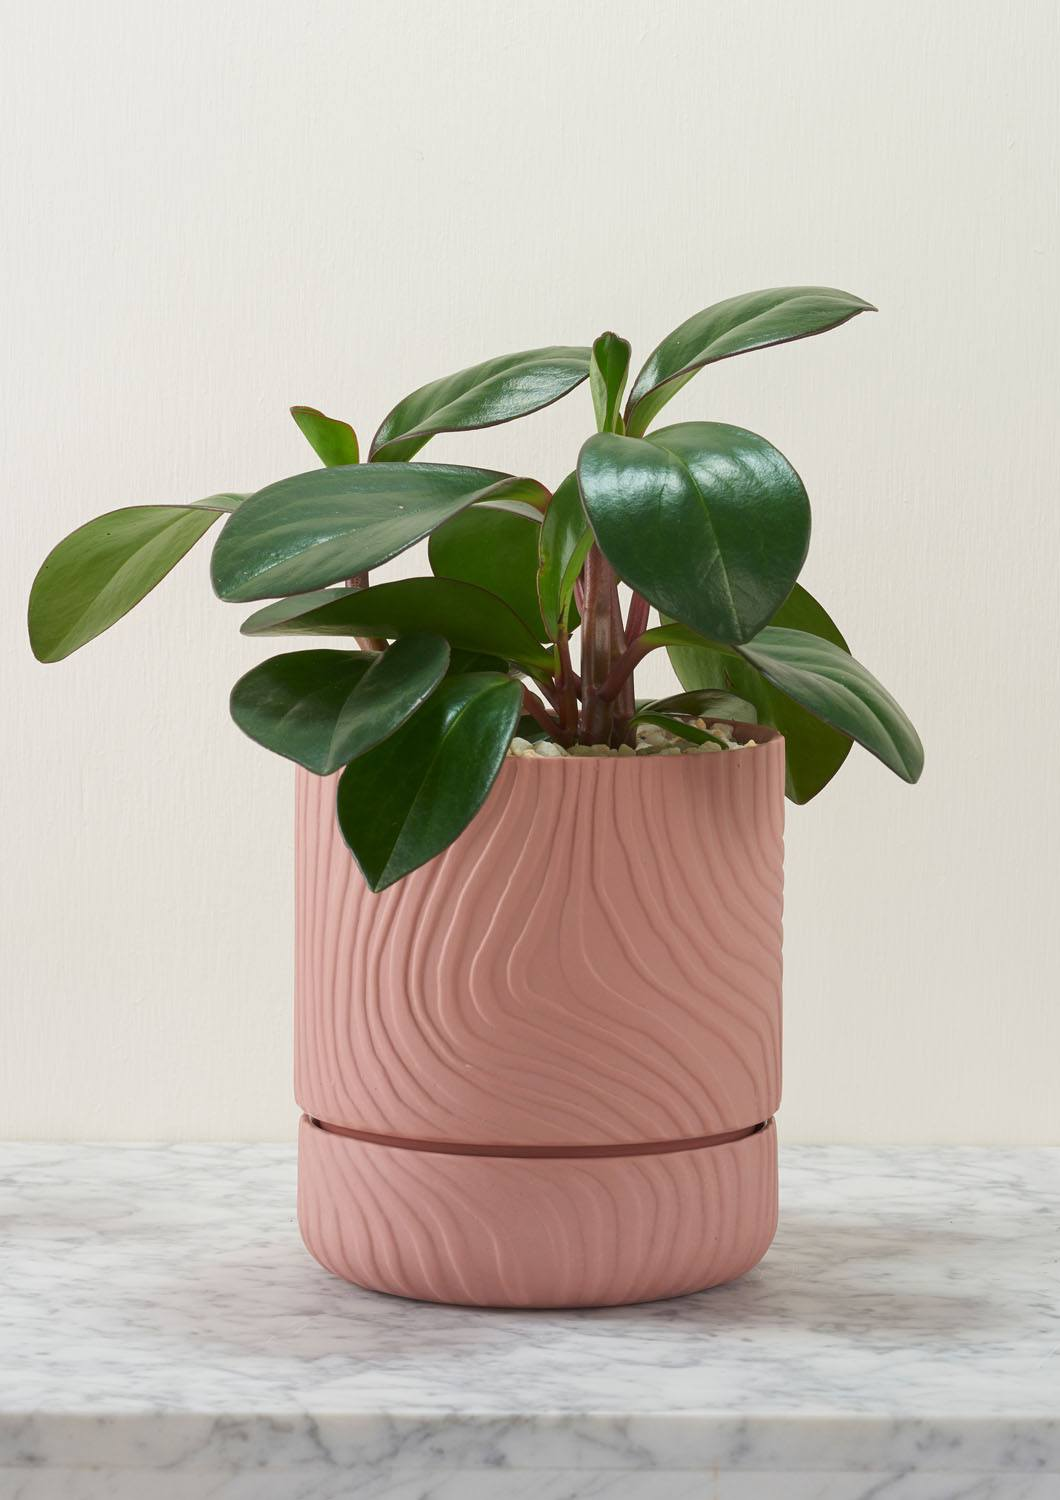 Angus & Celeste Abstract Relief Plant Pot - Brush Line Thin Ochre Styled